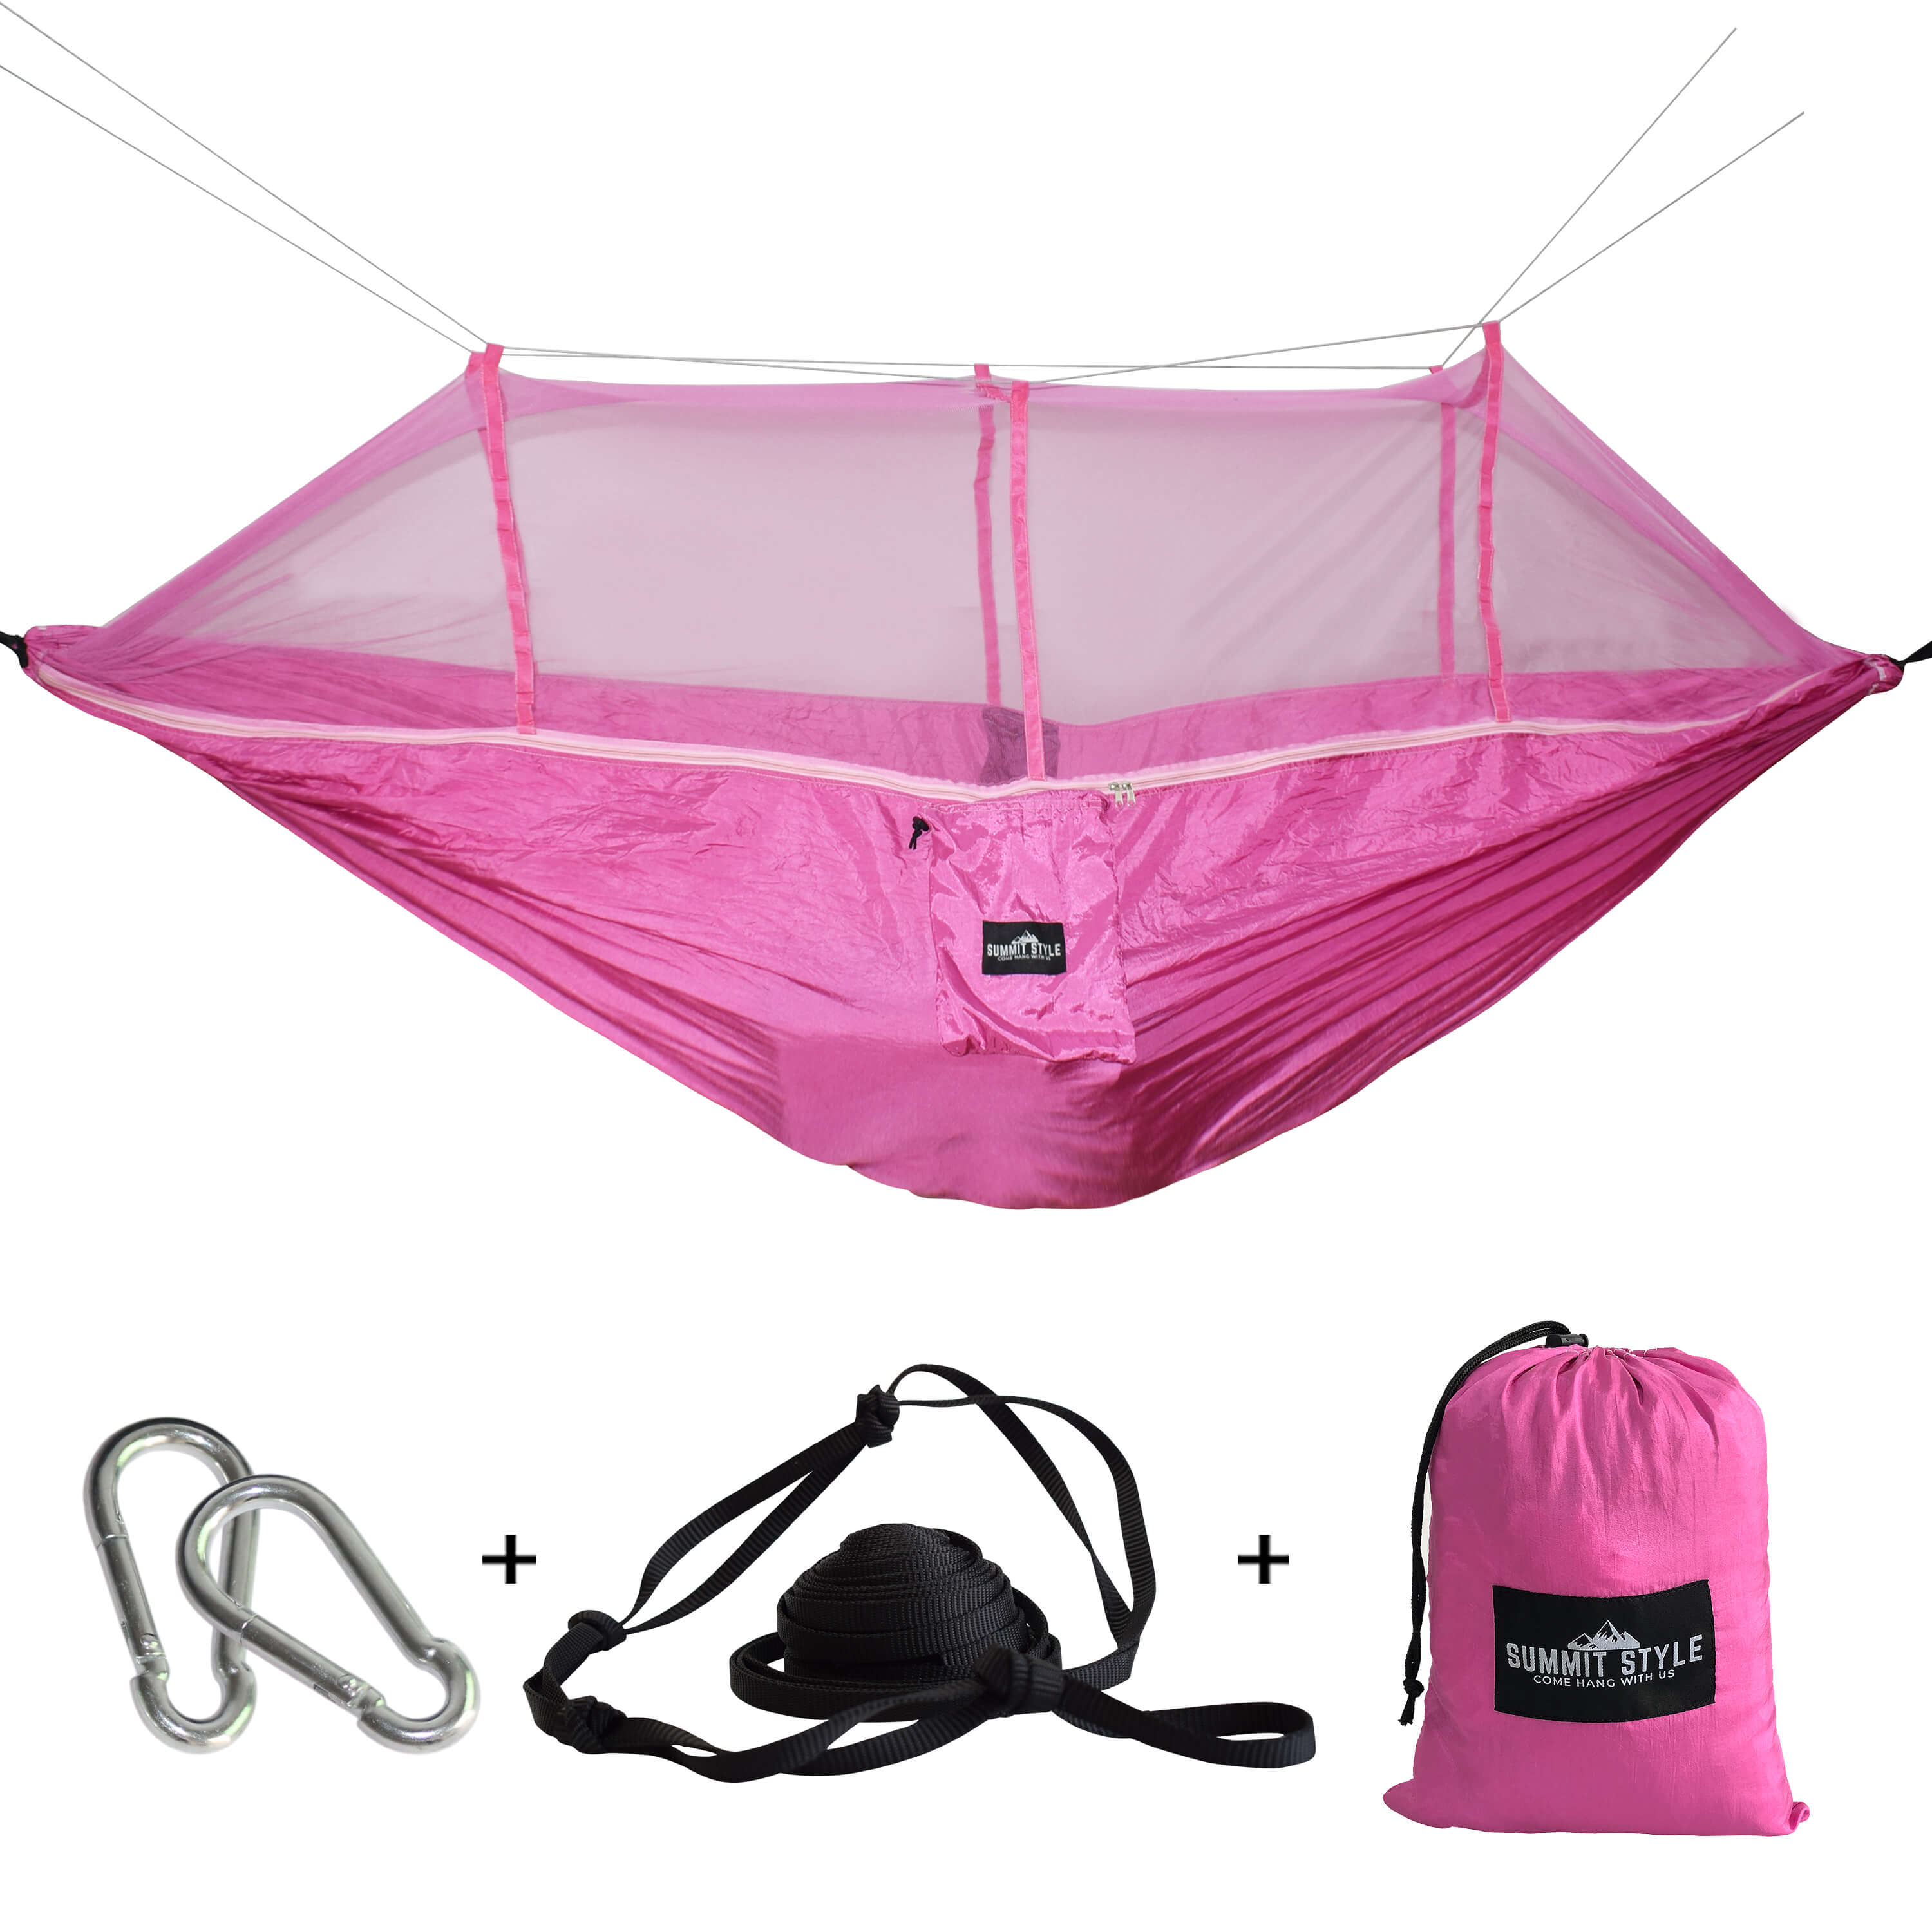 Summit Style's Nature Nest Hammock with Mosquito Net: Pink